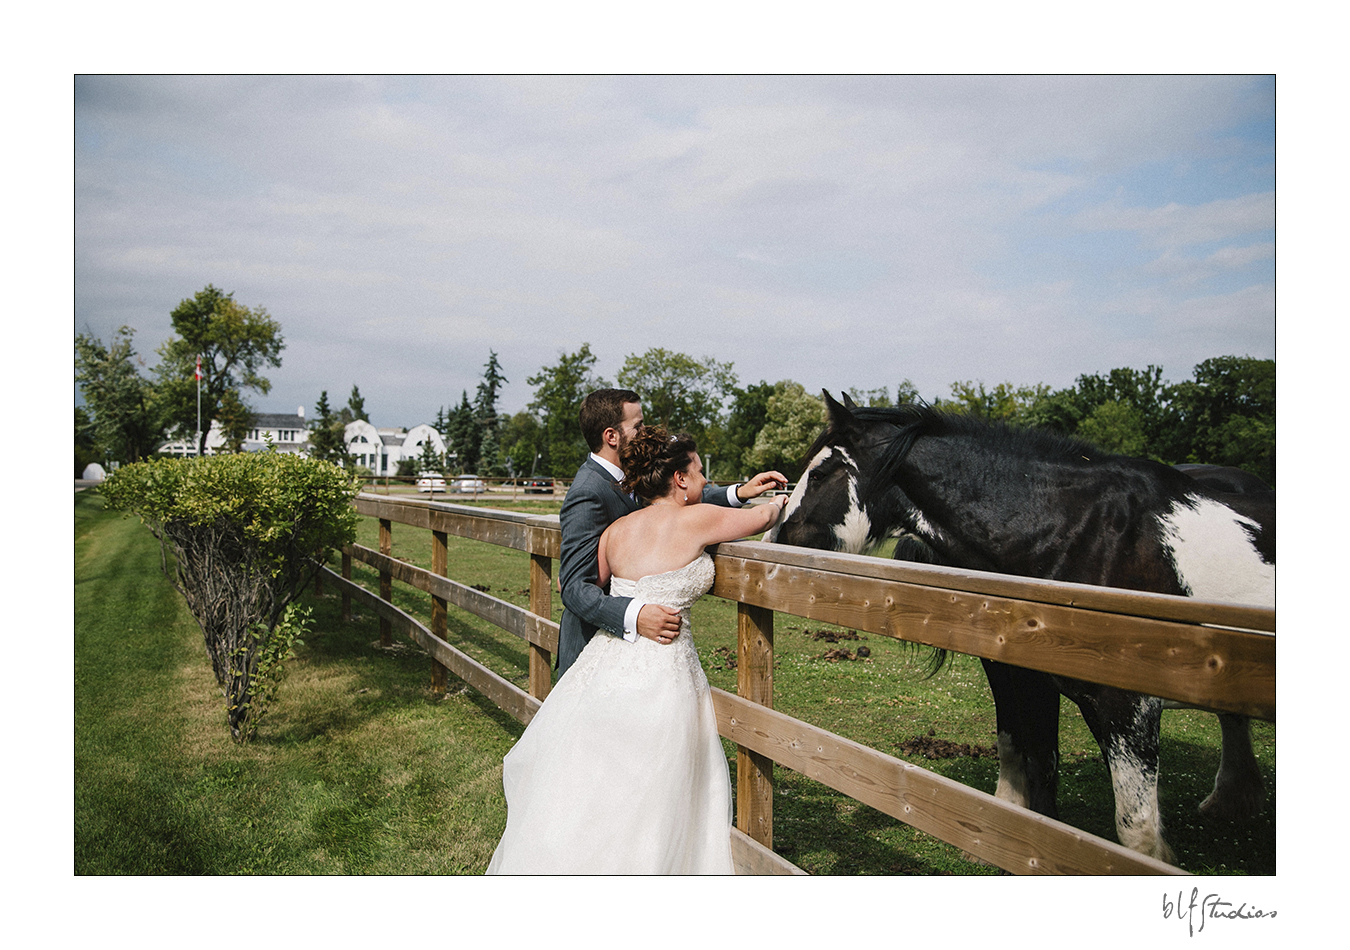 Weddings at The Gates on Roblin